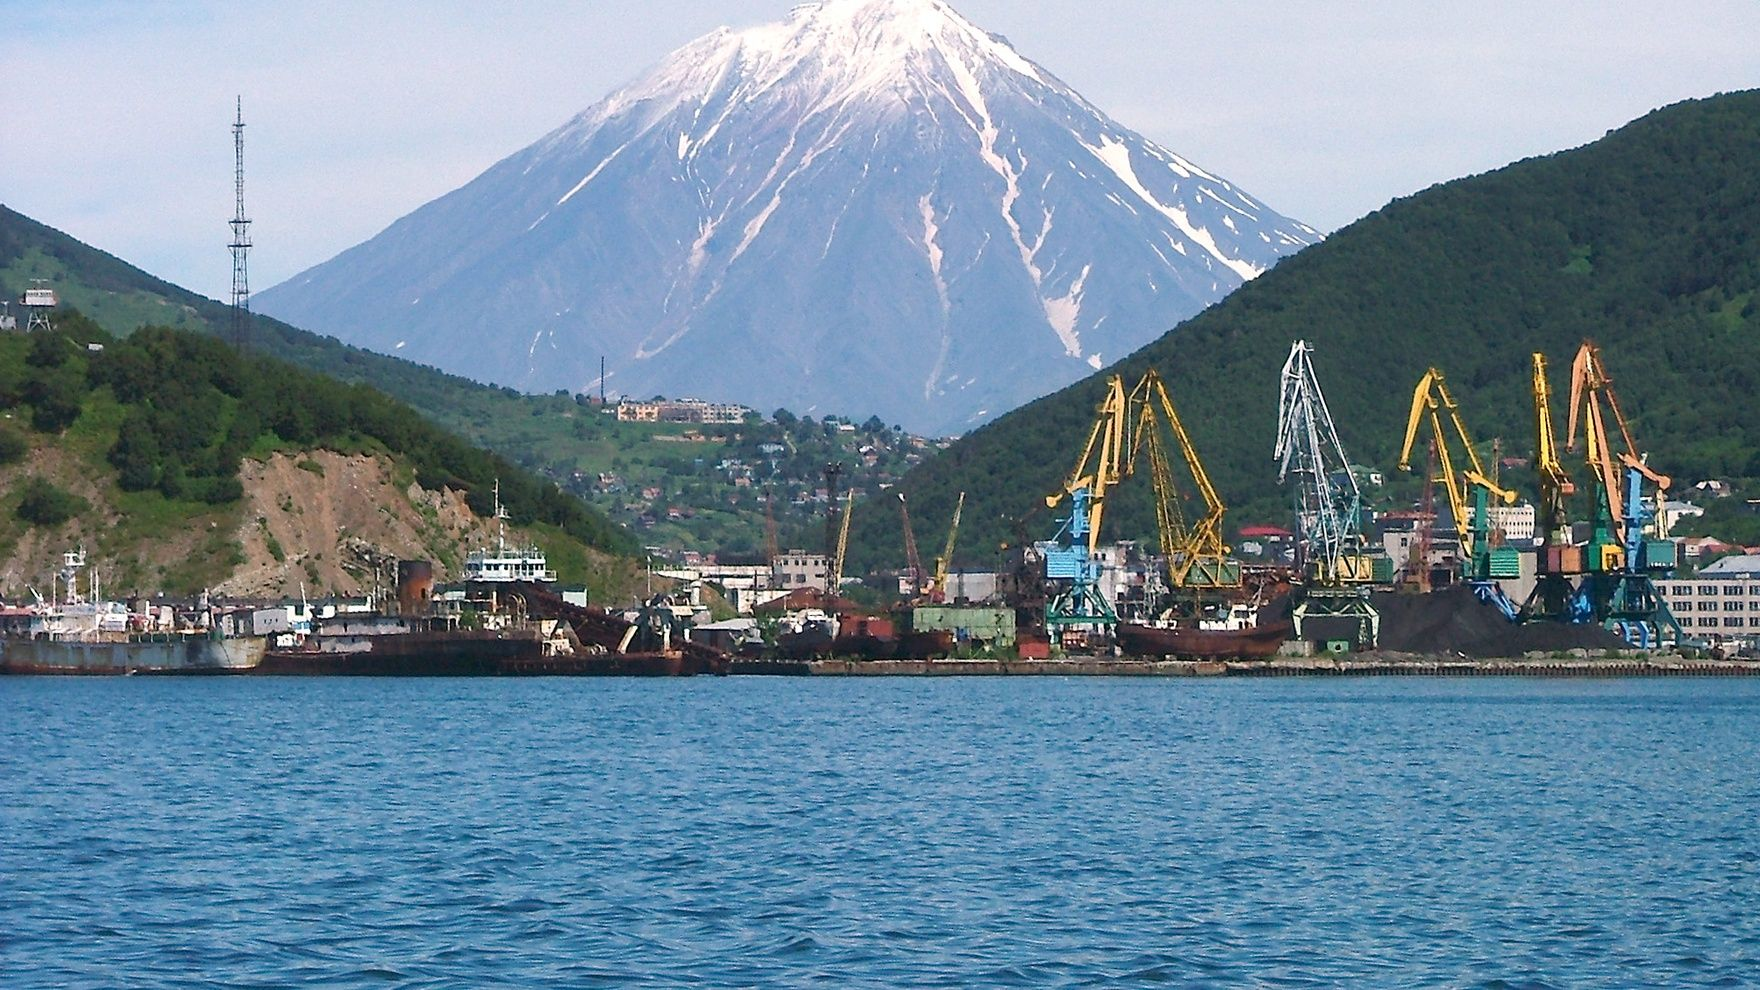 Sailing expedition to Kamchatka